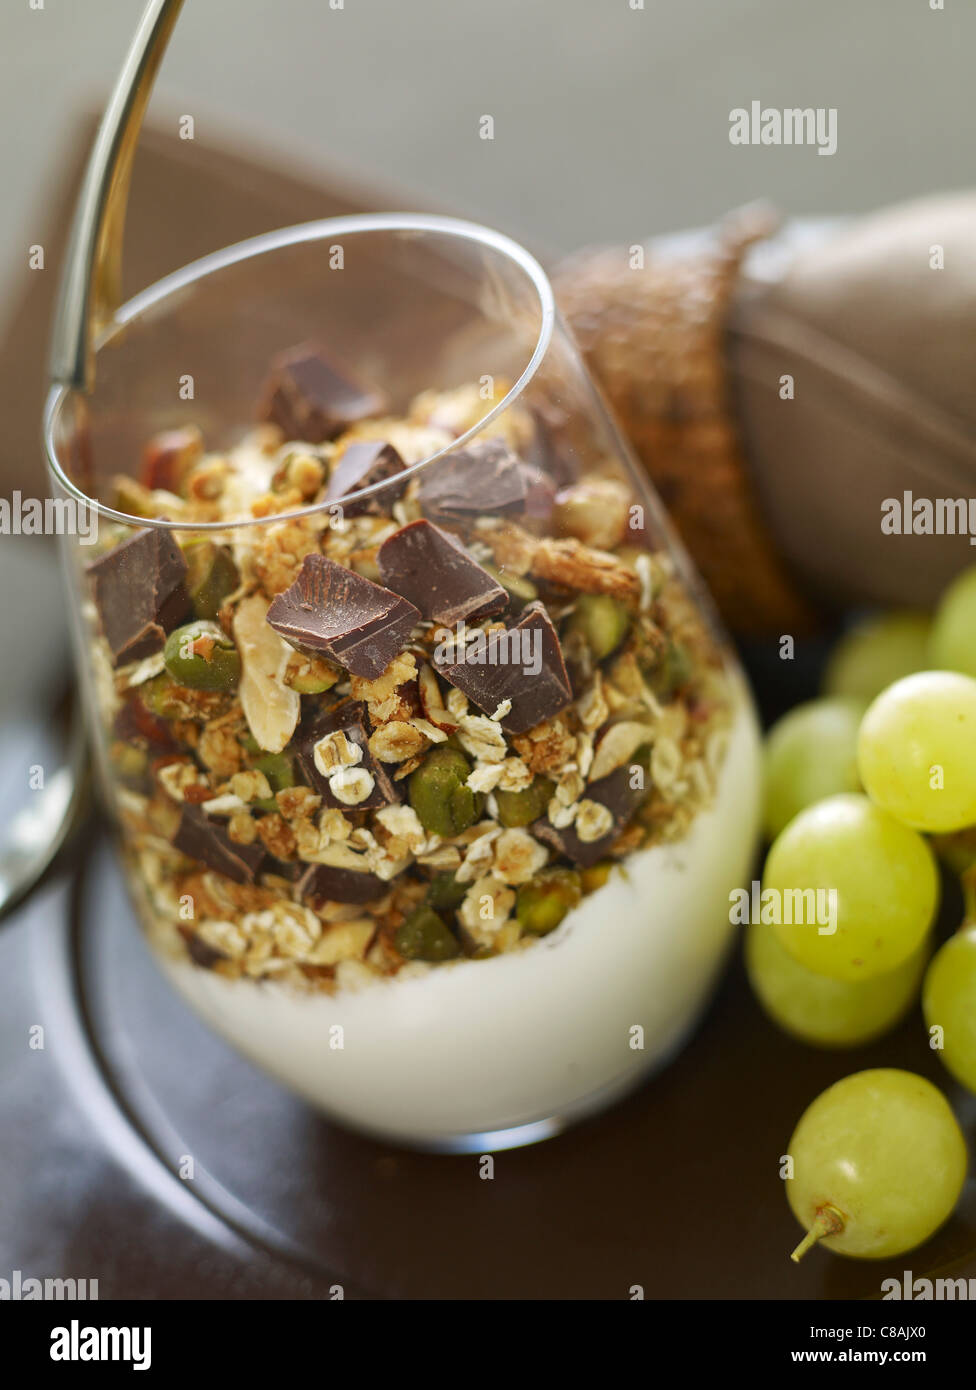 Yoghurt with cereals,dried fruit and chocolate chips - Stock Image